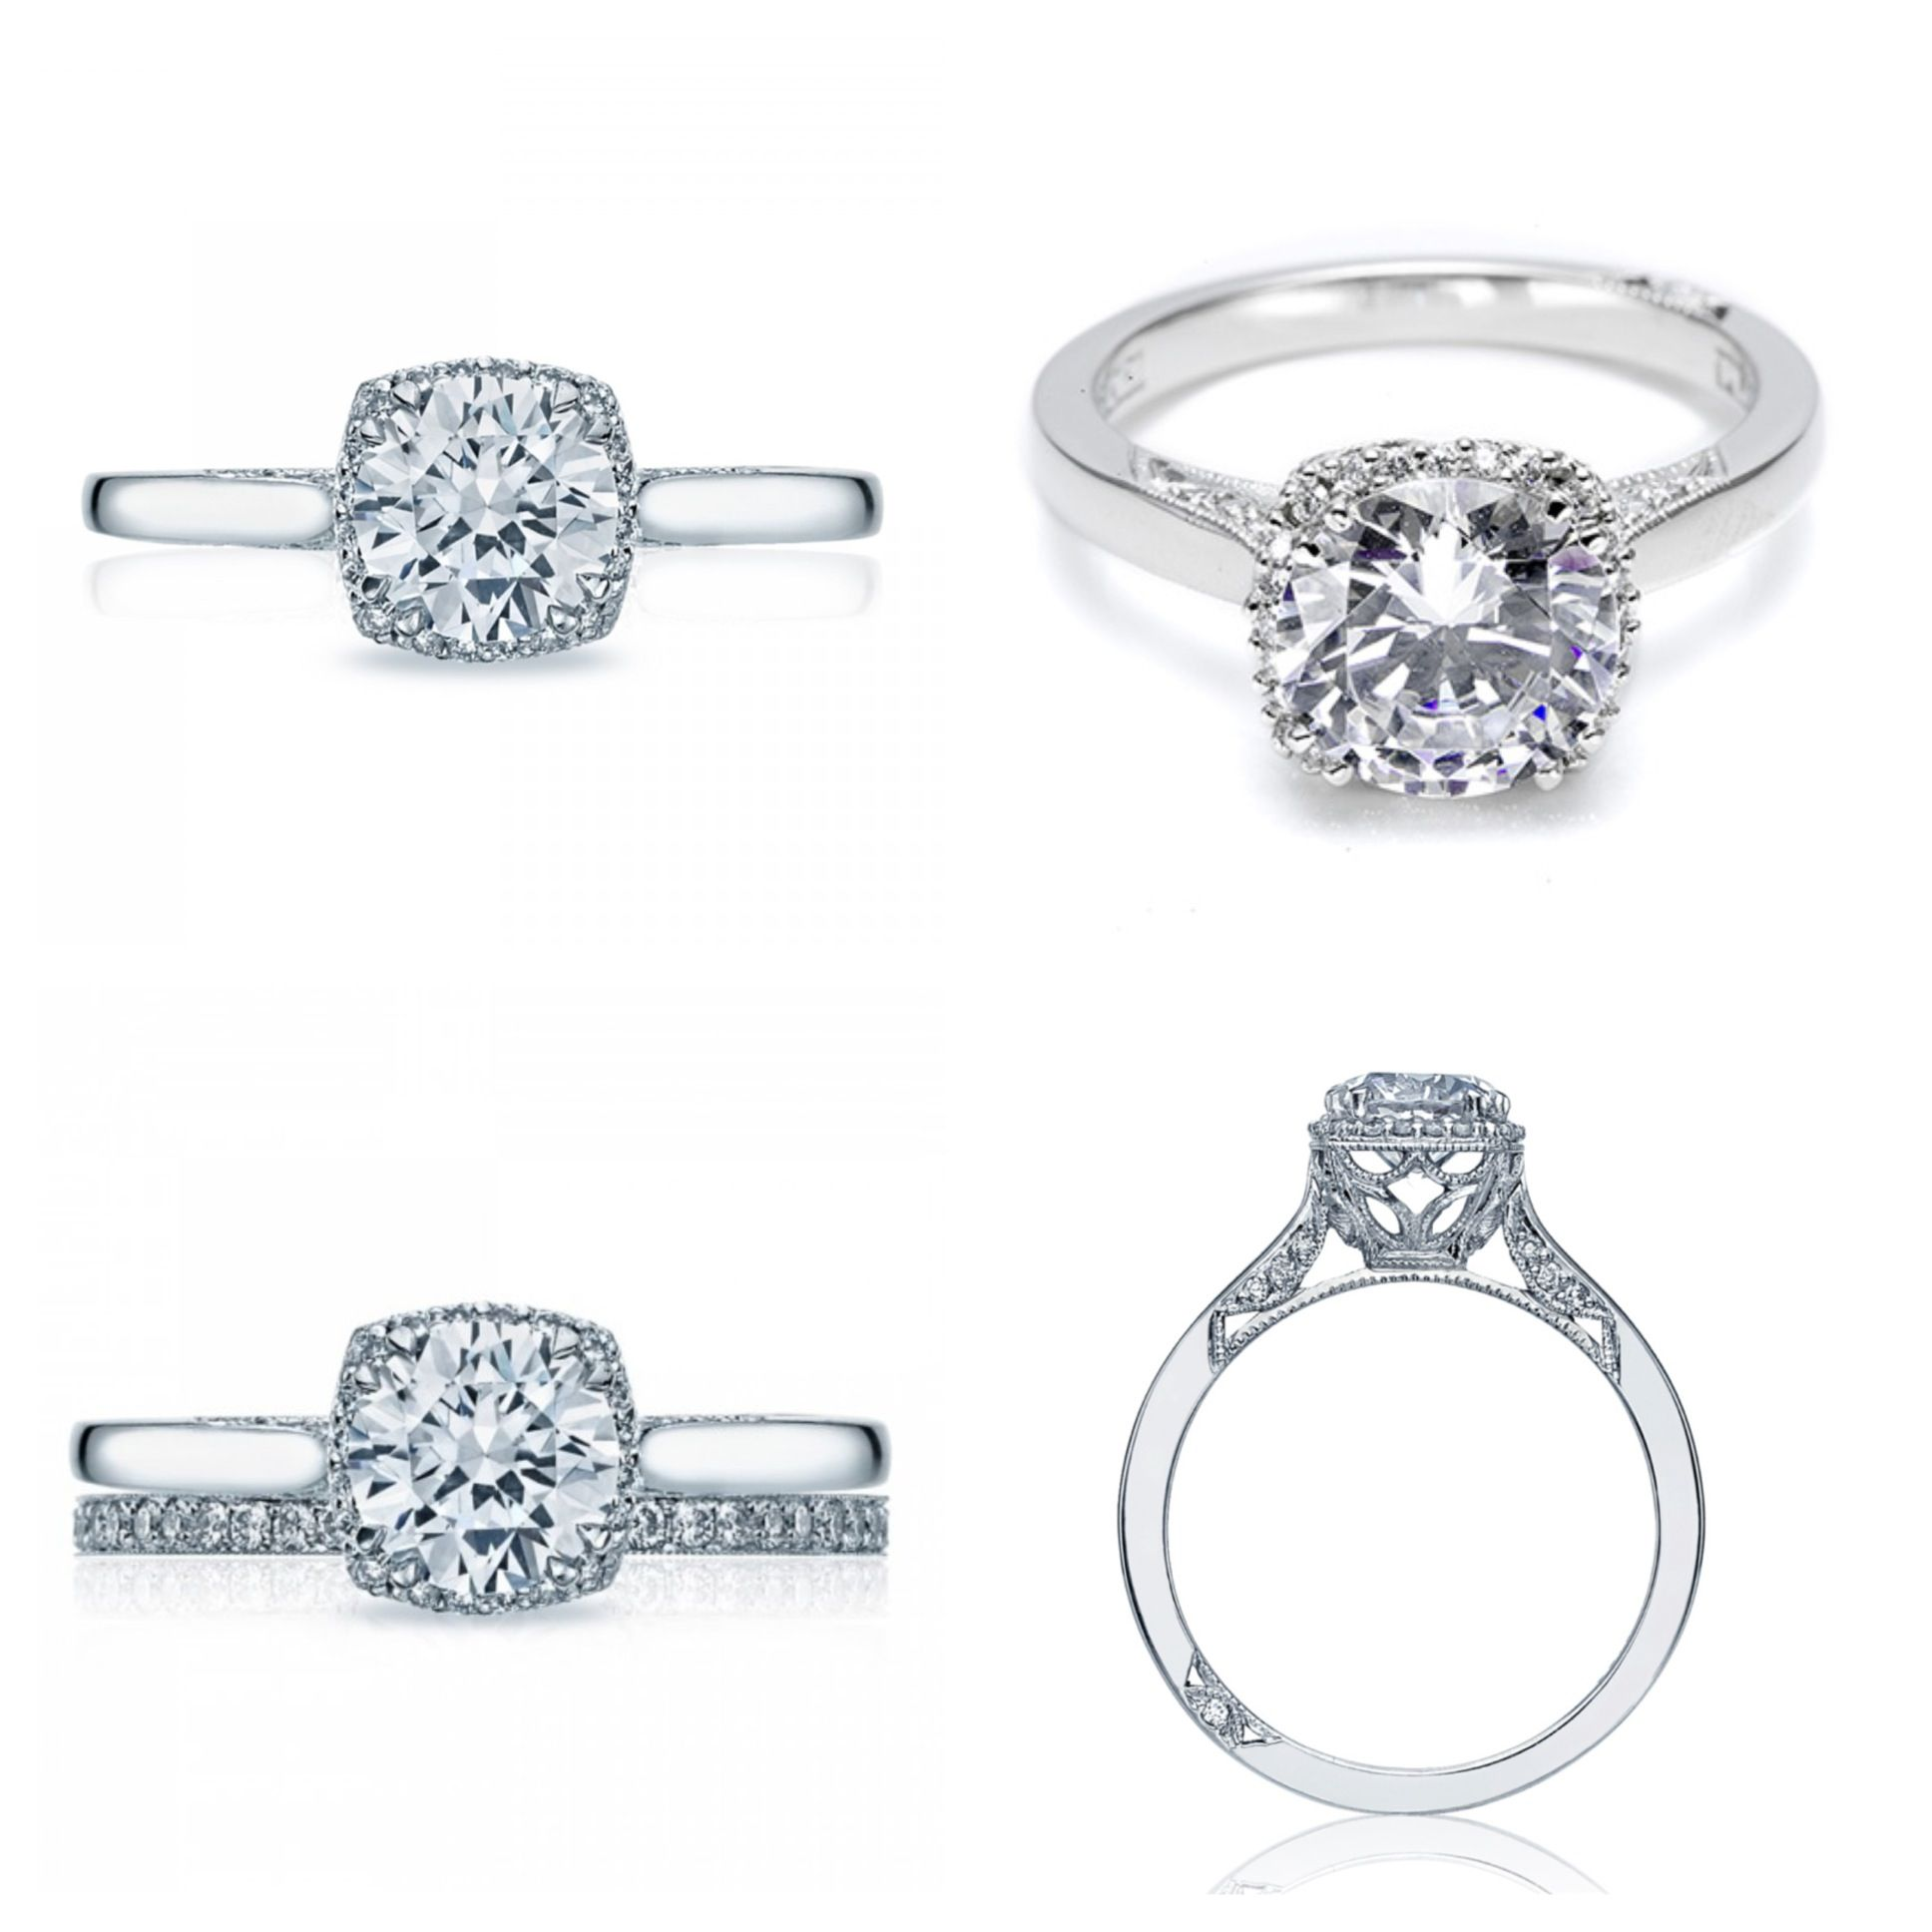 Tacori Engagement Ring 2620rdsm is is a perfect ring for me